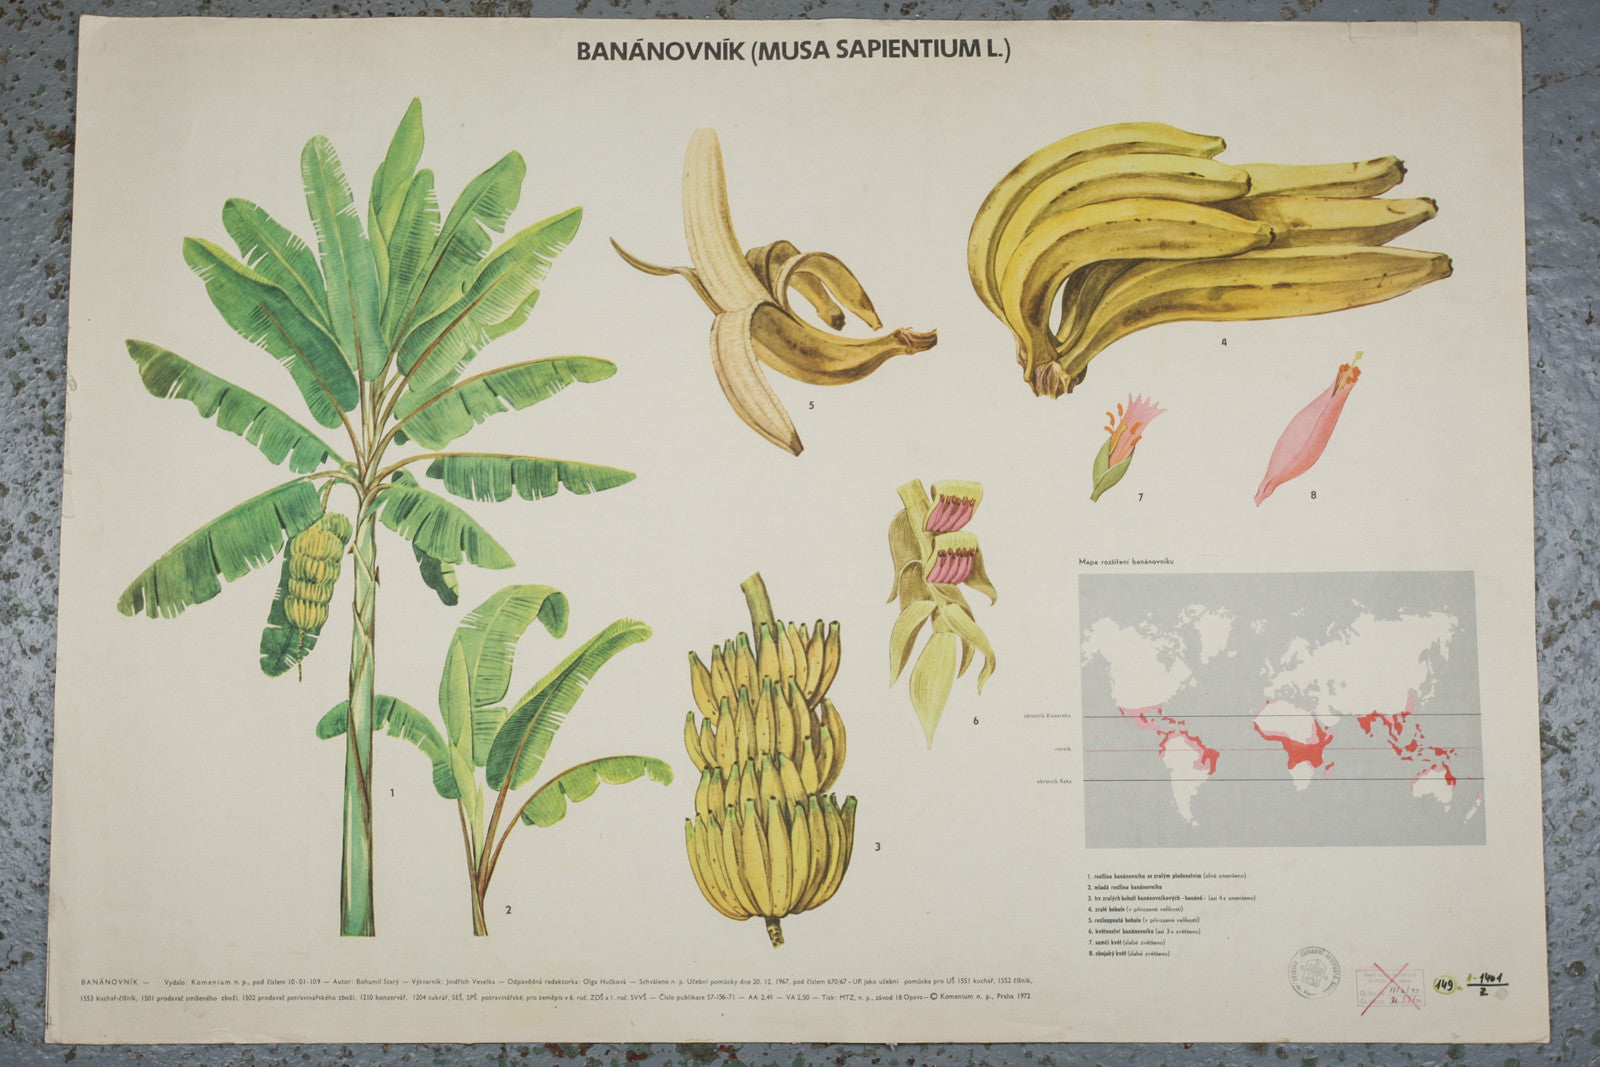 A 1972 botanical school wall chart of a banana available for sale from Industrious Interiors, an online vintage furniture and homeware store based in Nottingham, England.